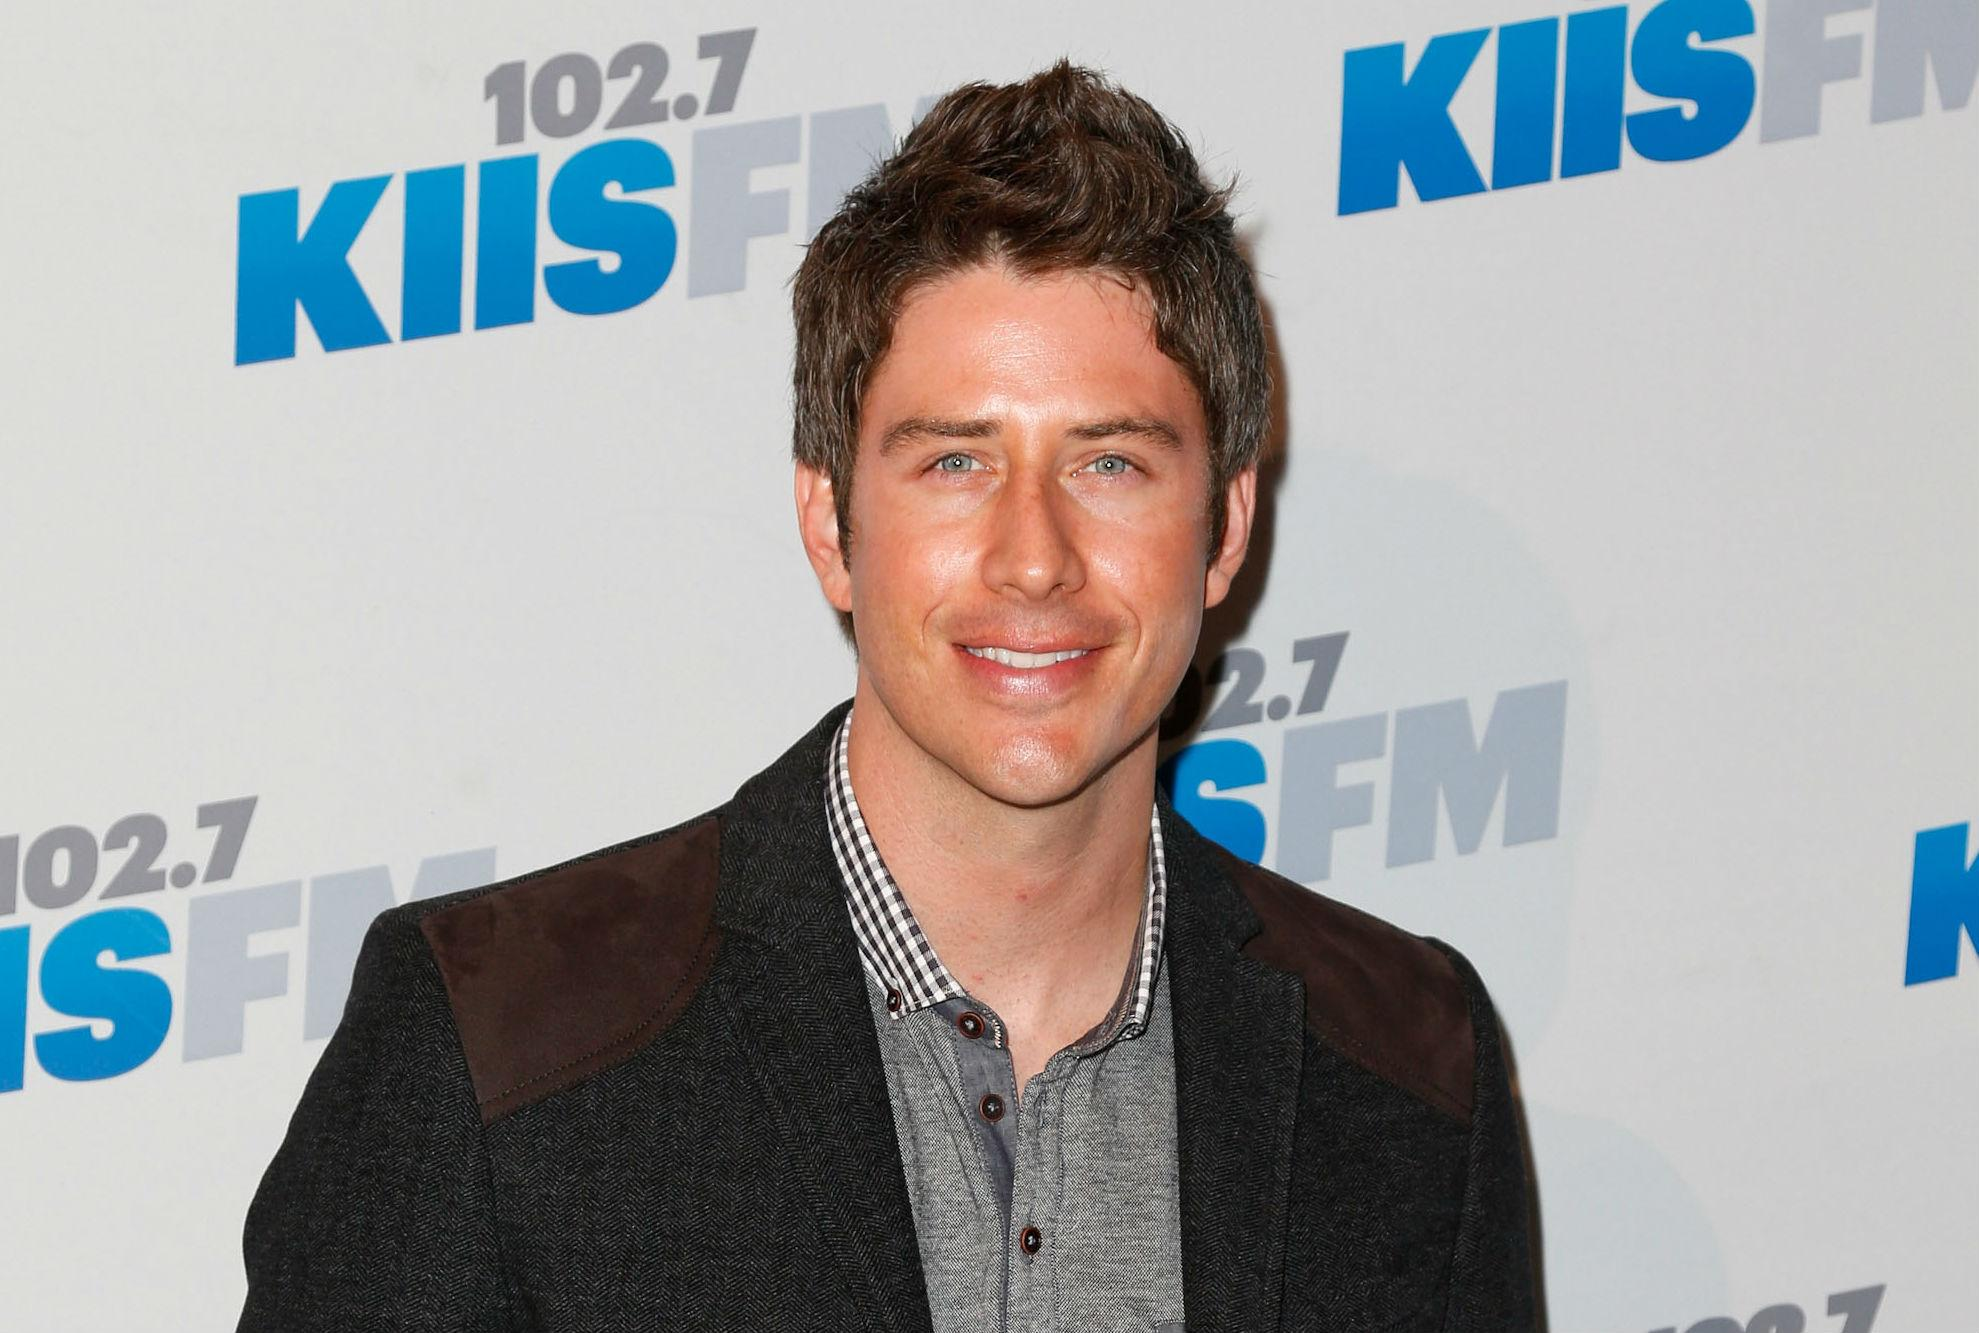 New 'Bachelor' Arie Luyendyk Jr. talks on 'Good Morning America'